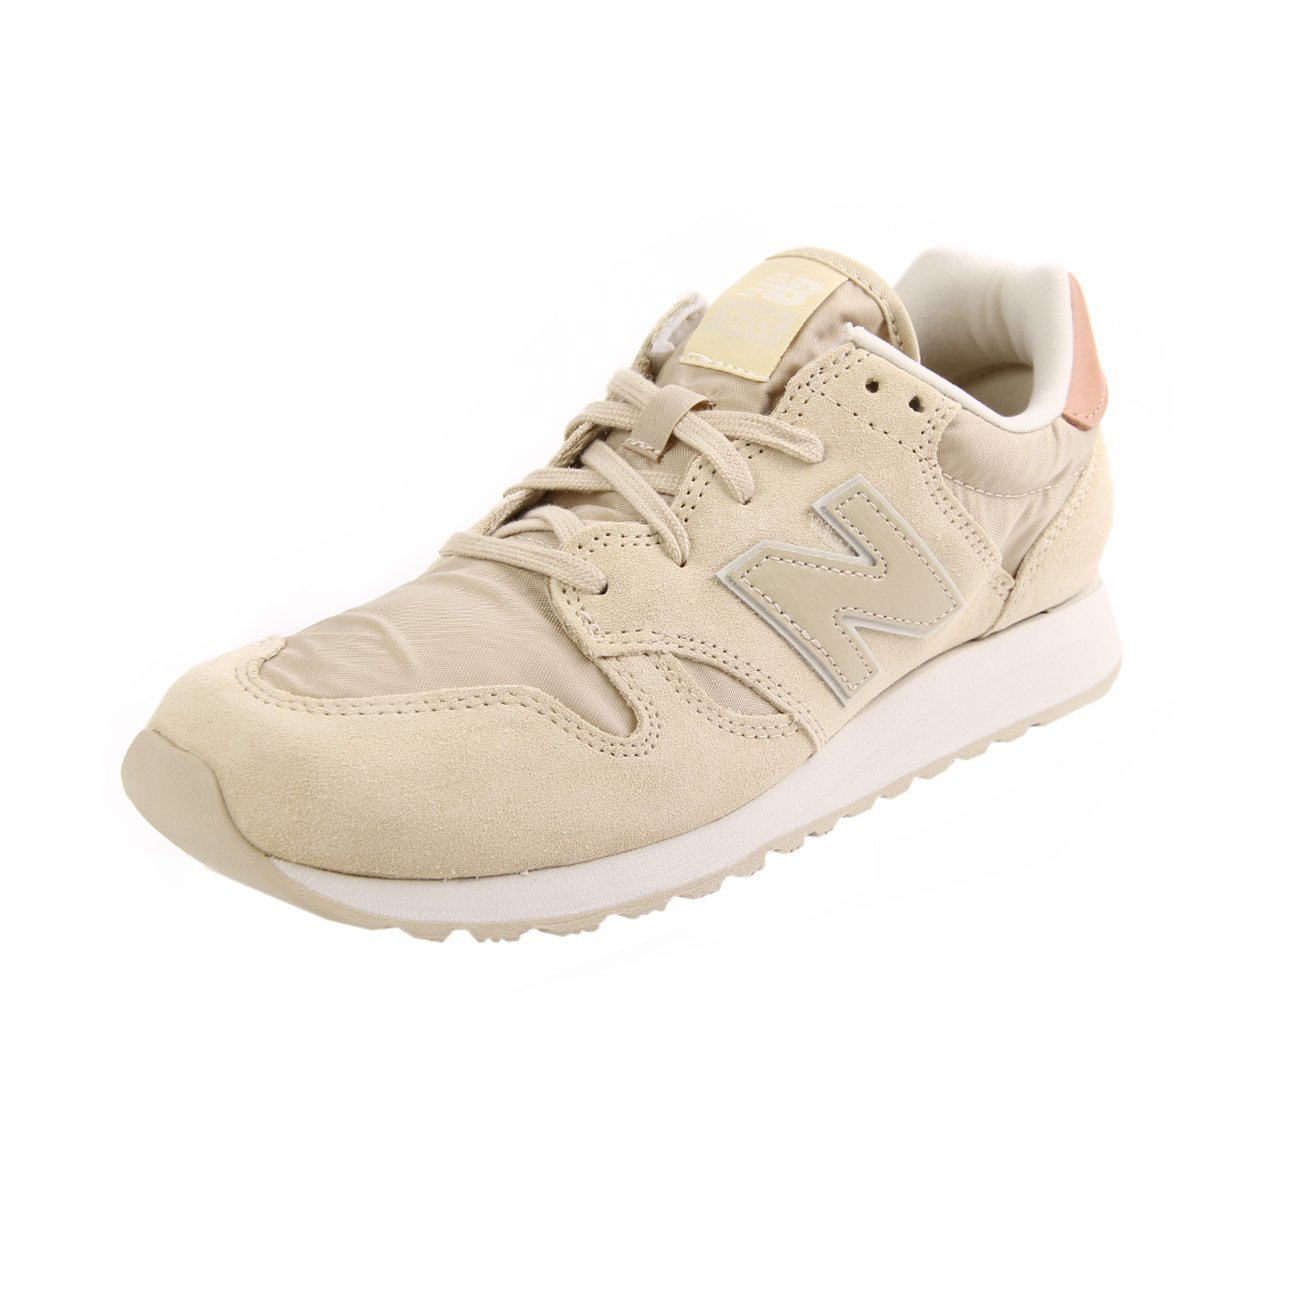 New Balance Women's 520v1 Sneaker B01N0GKAE4 10 B(M) US|Incense/Phantom